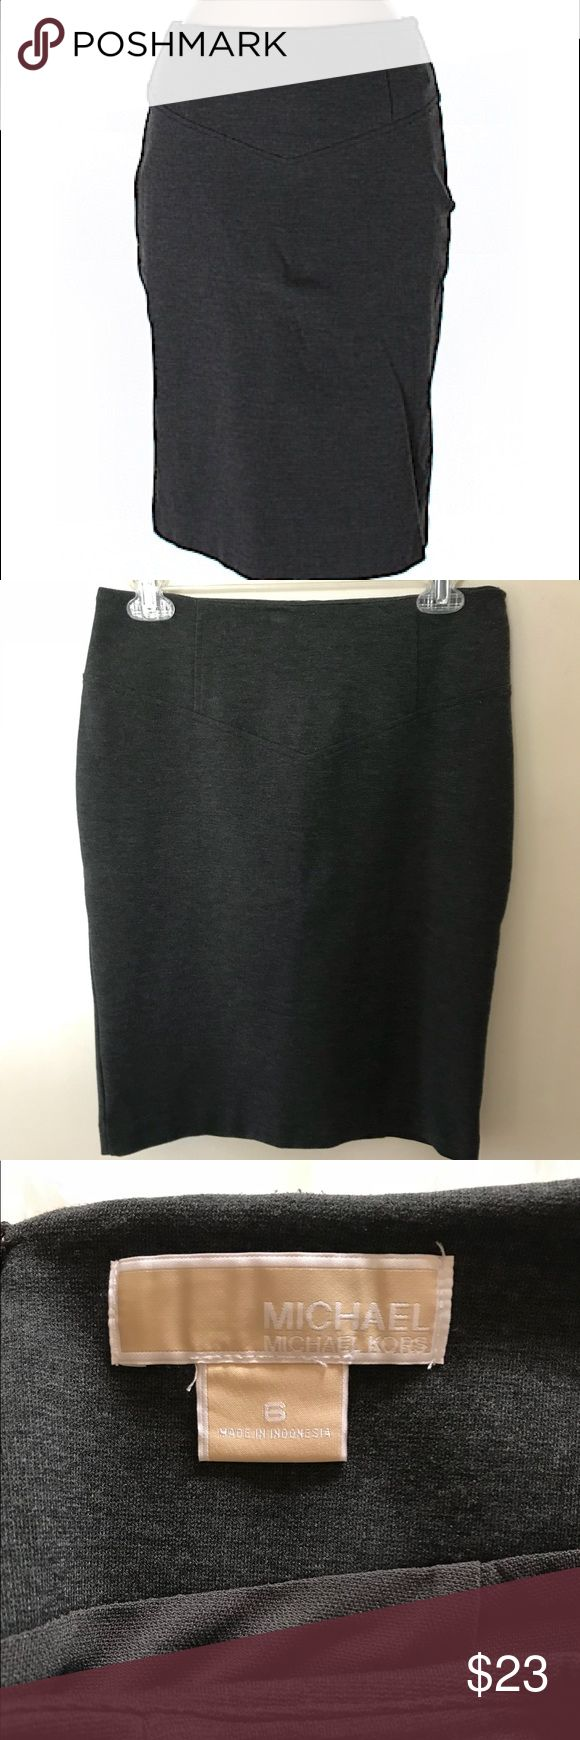 """Michael Kors Gray Knit Pencil Skirt Michael Kors pencil skirt. 44% polyester, 28% nylon, 23% rayon, 5% lycra. It's a stretchy knit with seams for a very flattering fit. 22.5"""" length, 28"""" waist, hidden back zipper & stretchy full gray lining. Excellent condition, no flaws. Great for office/business. Can be worn with boots, heels or flats. Clean non-smoking home. Posh Ambassador (Suggested User), 5⭐️avg rated, ship quickly - so you can buy with confidence. 30% bundle discount on 2 or more…"""